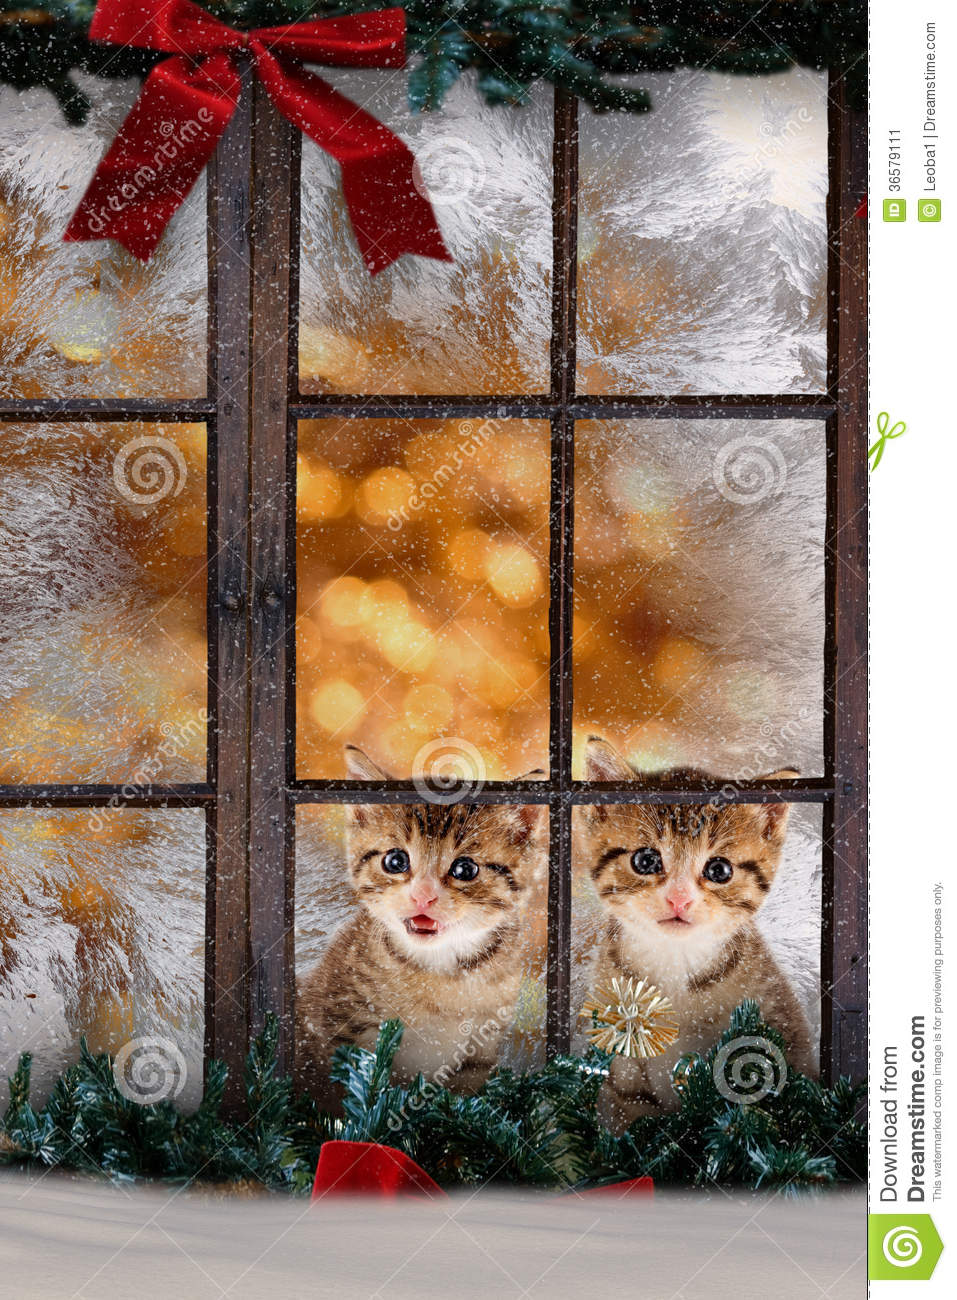 Two Cats Kittens Sitting At The Window With Christmas